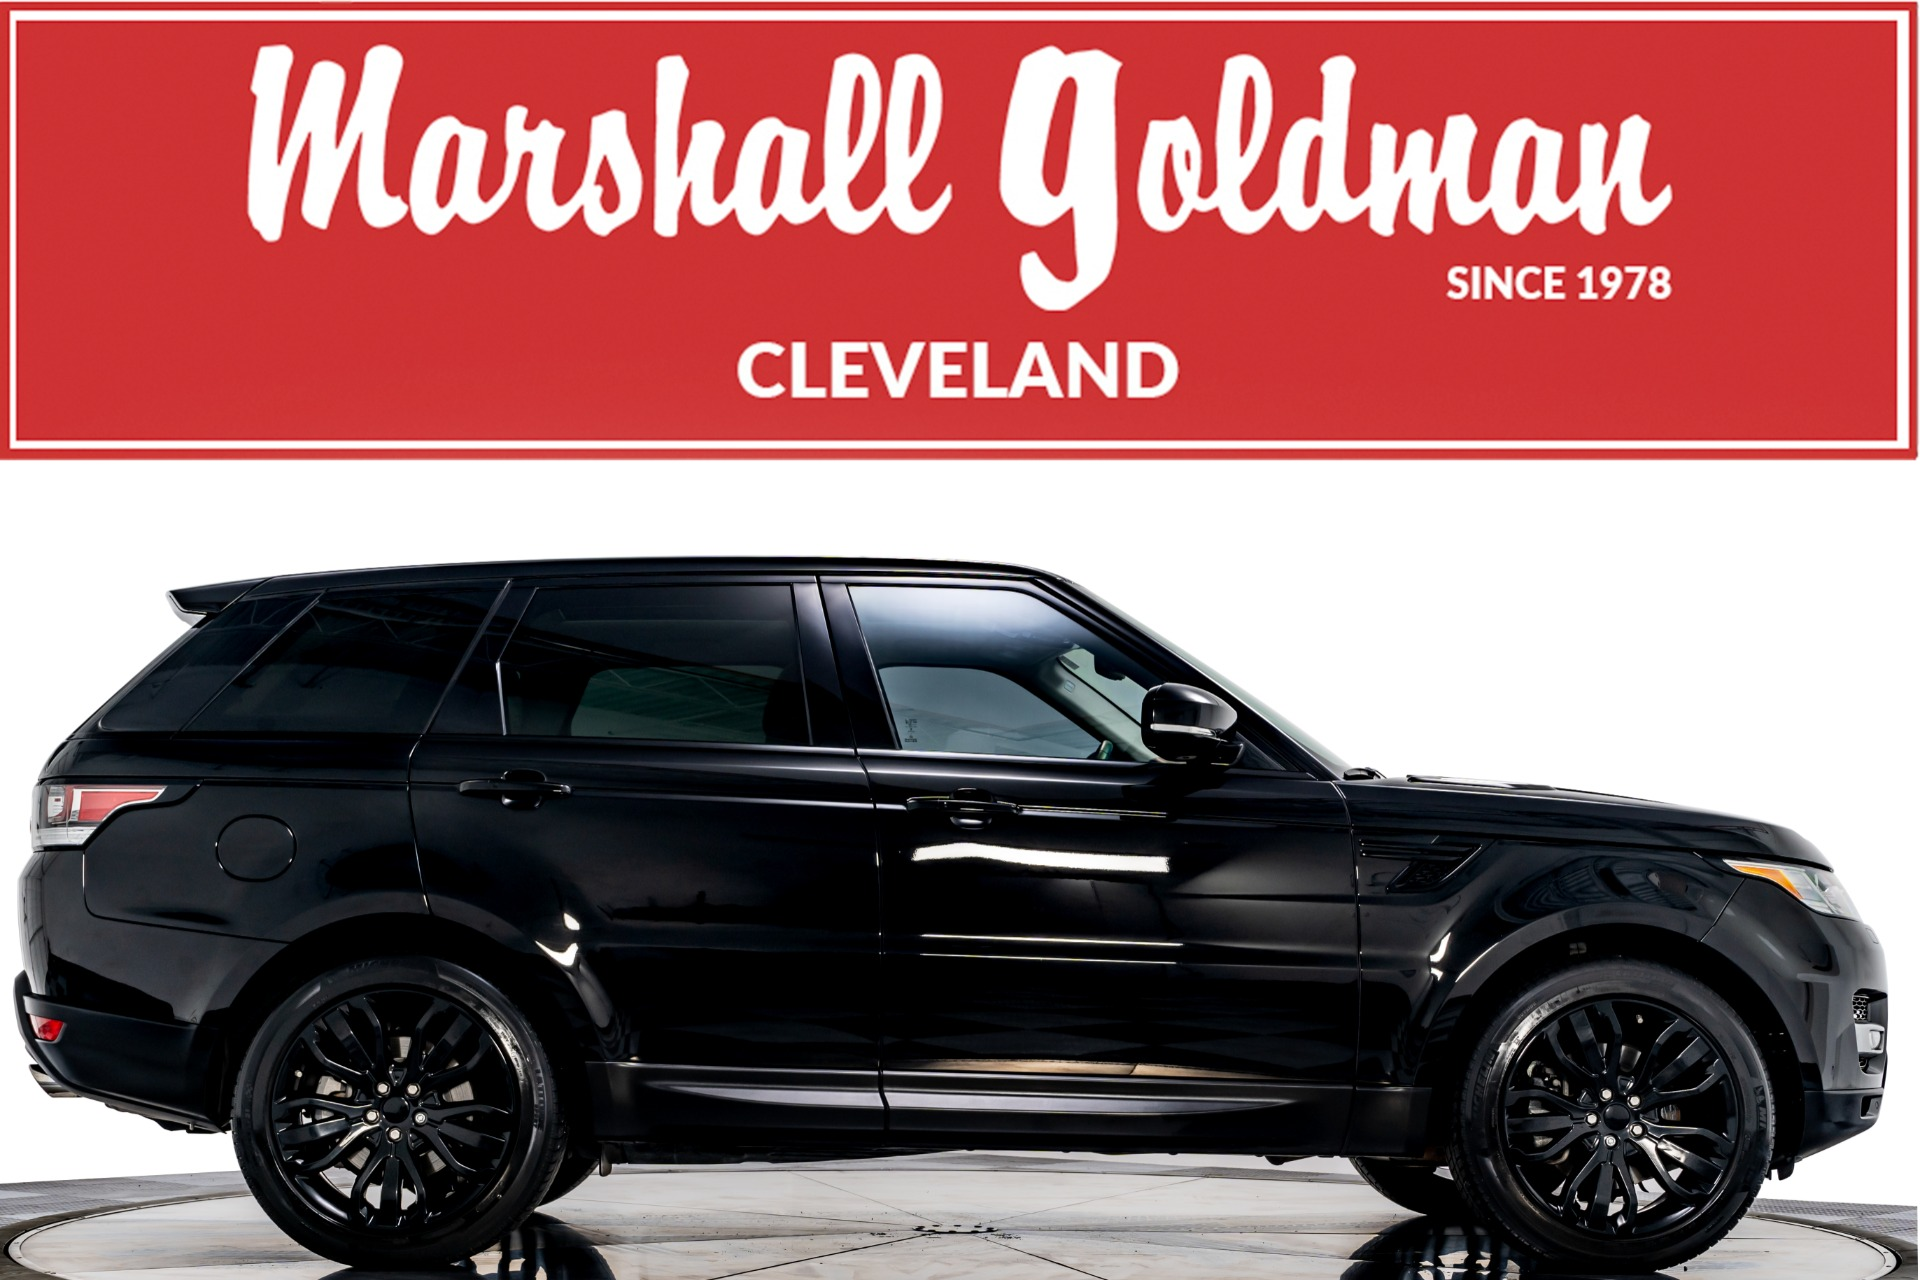 Used 2015 Land Rover Range Rover Sport Hse For Sale Sold Marshall Goldman Motor Sales Stock W21198